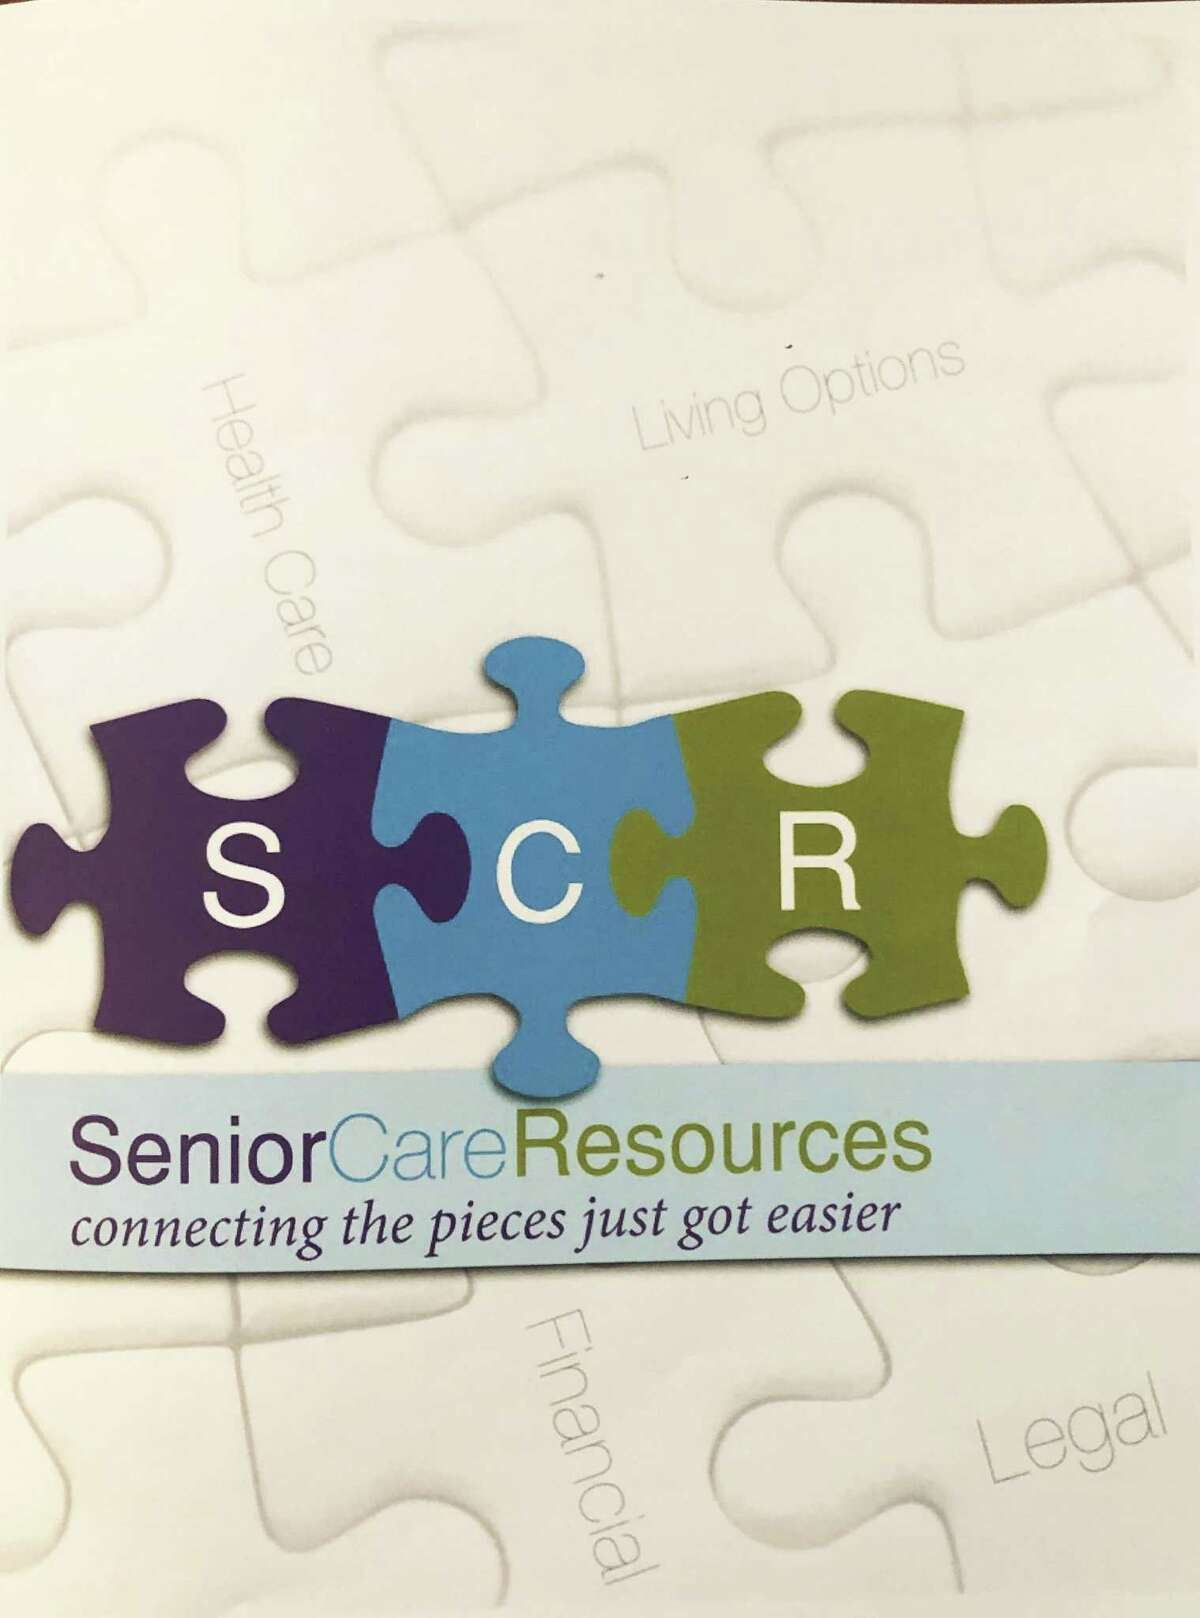 The Senior Care Resources of Western Connecticut group in New Milford aims to help elder individuals and their families plan for their futures.